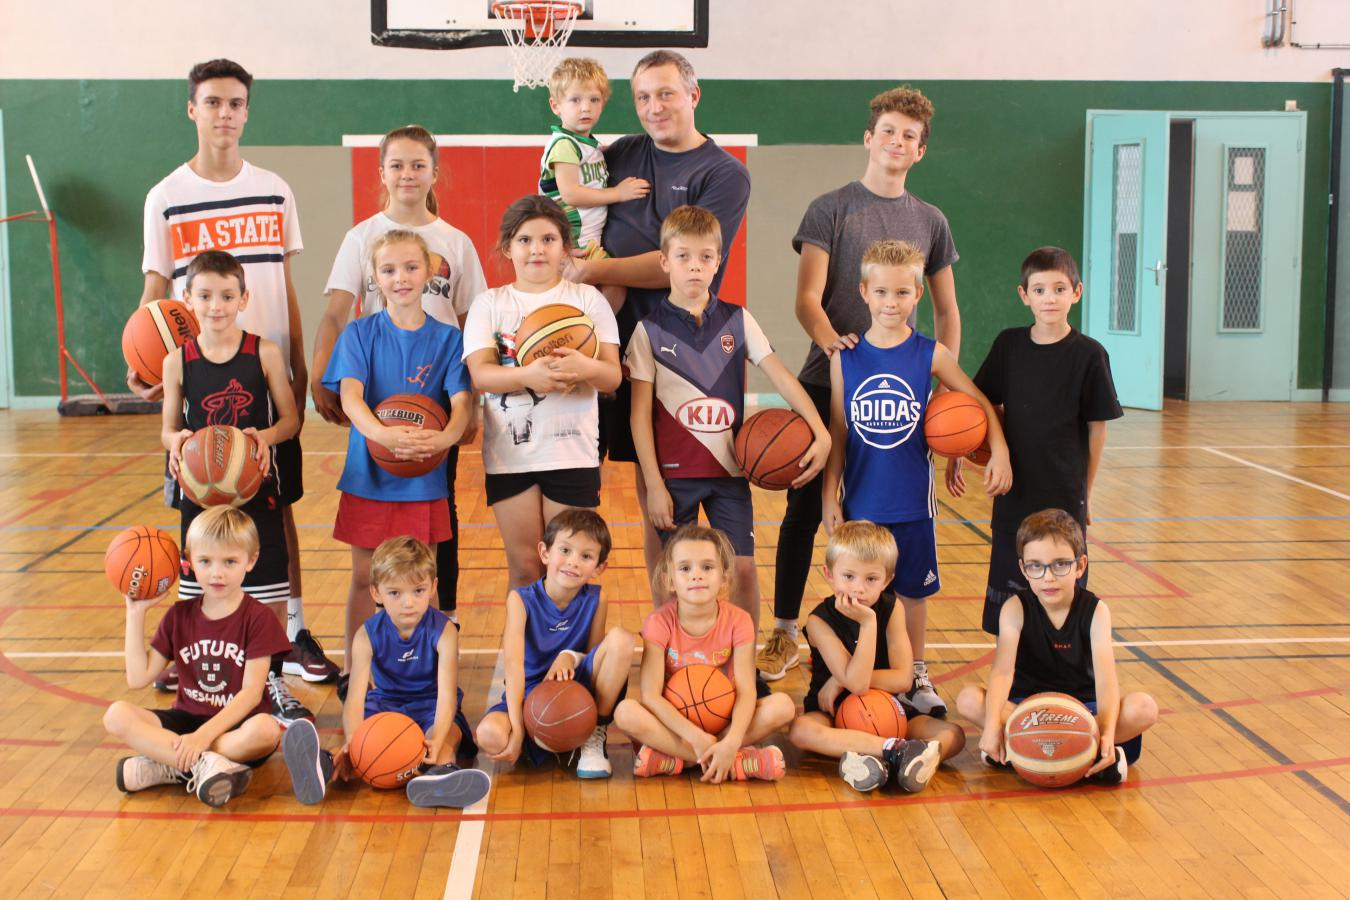 Mini U9 - Baby U7 - JLA Basket